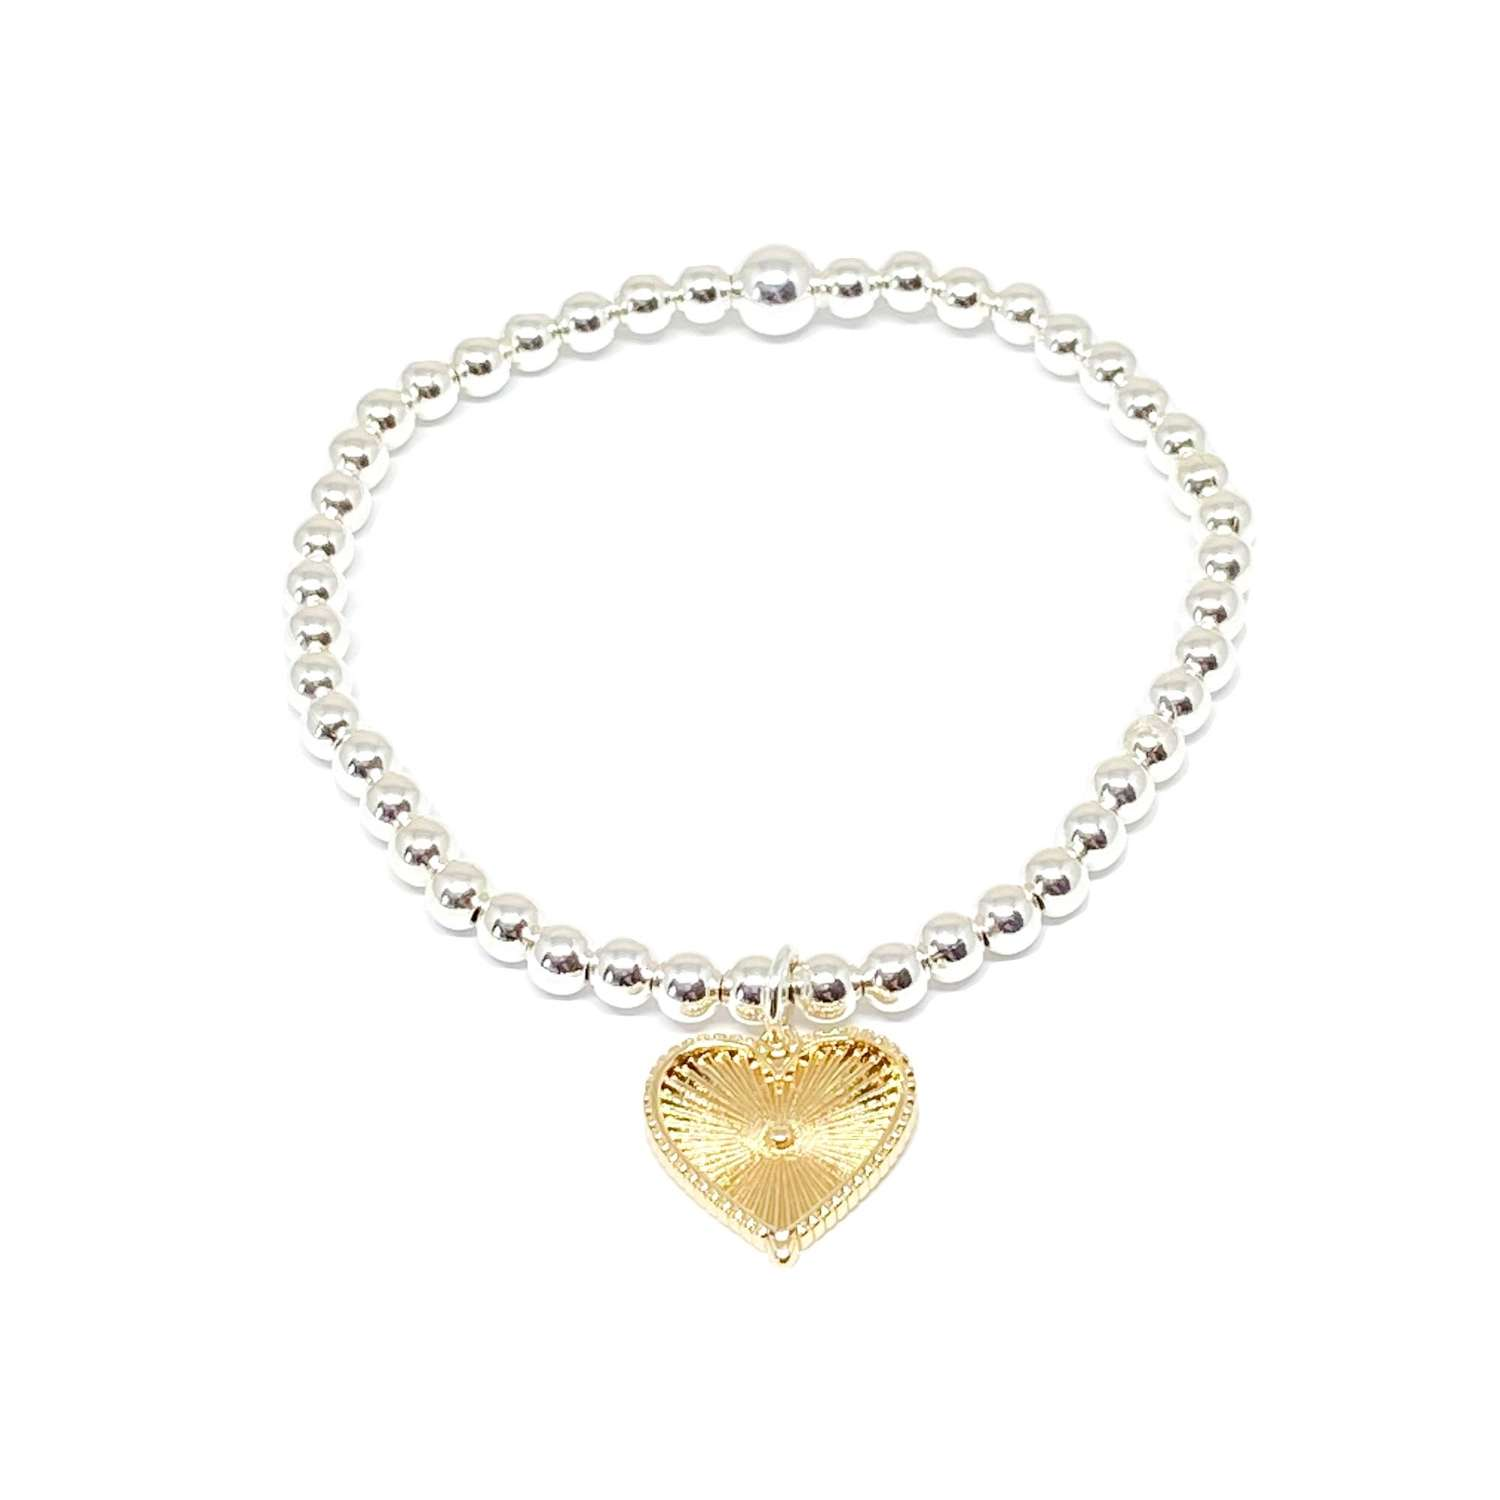 Lottie Heart Charm Bracelet - Gold